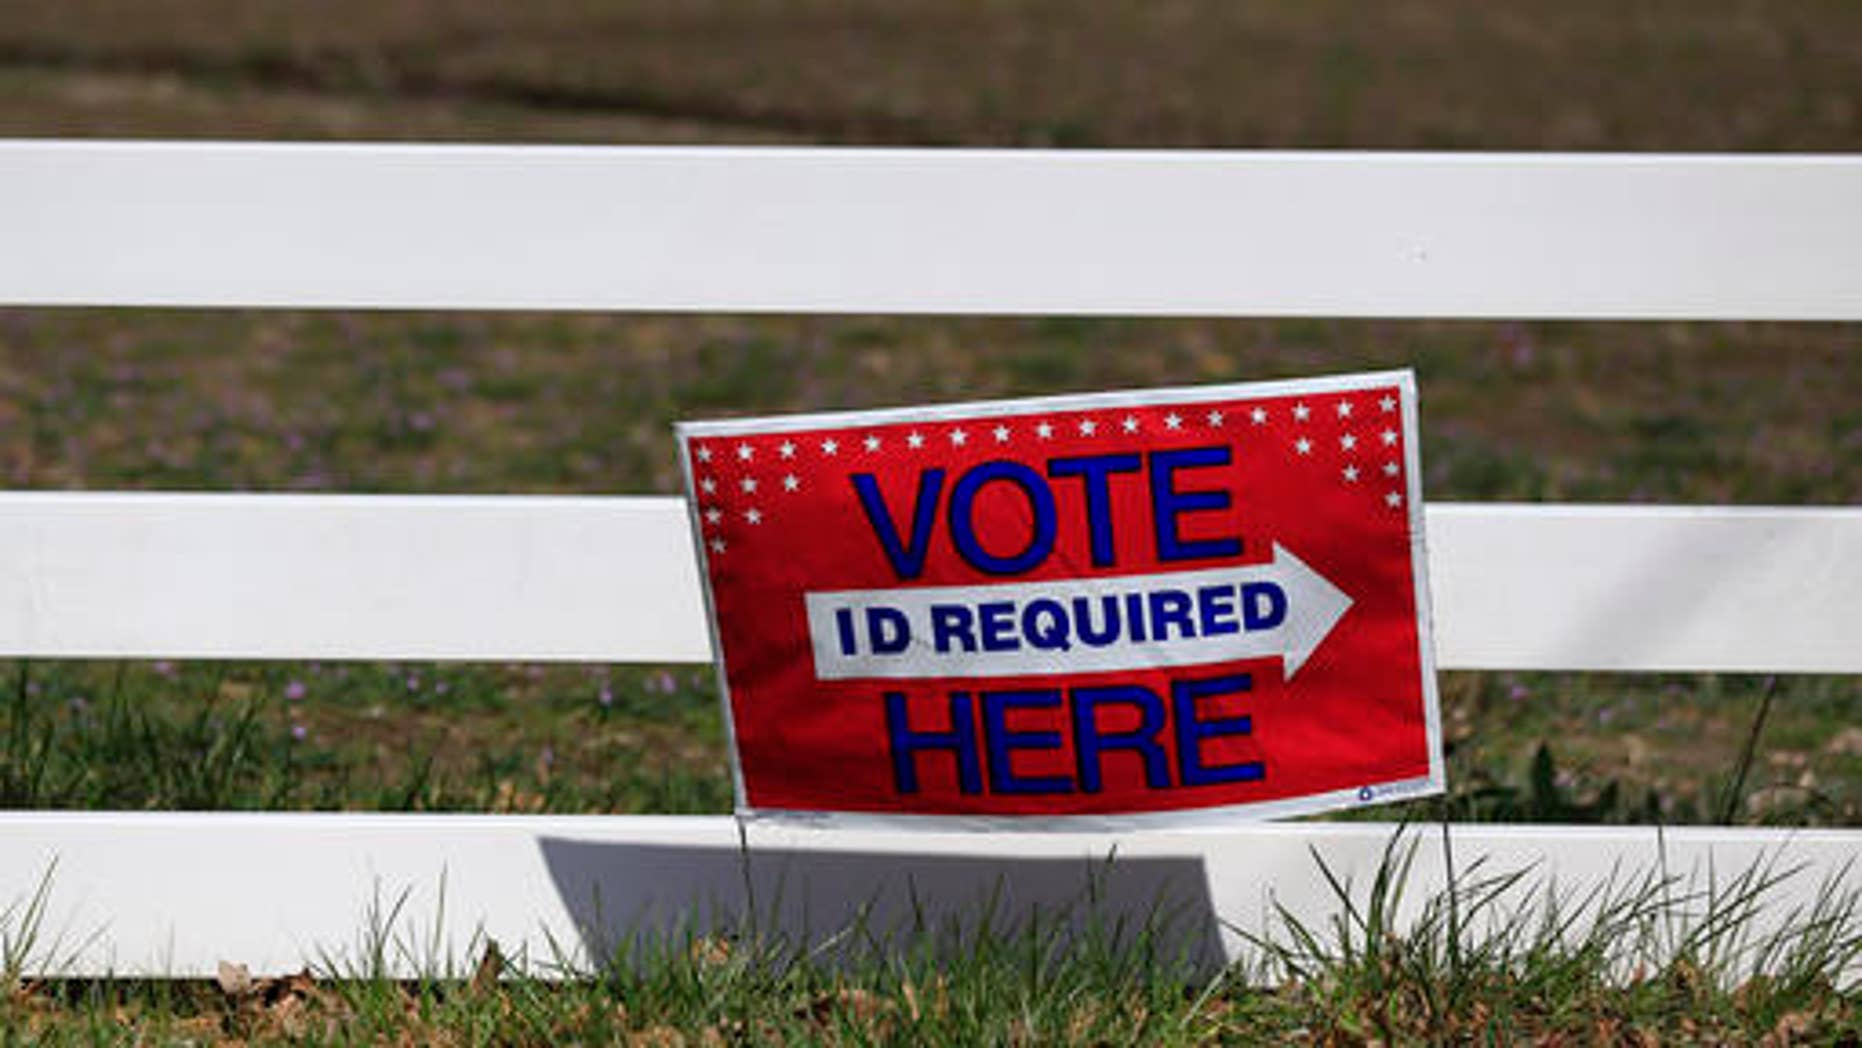 A sign directing voters is posted along a fence line at the Platte County Fair Grounds in Tracy, Mo., Tuesday, March 15, 2016. Voters in Missouri, as well as North Carolina, Illinois, Ohio and Florida are casting their ballots in primary elections Tuesday. (AP Photo/Orlin Wagner)